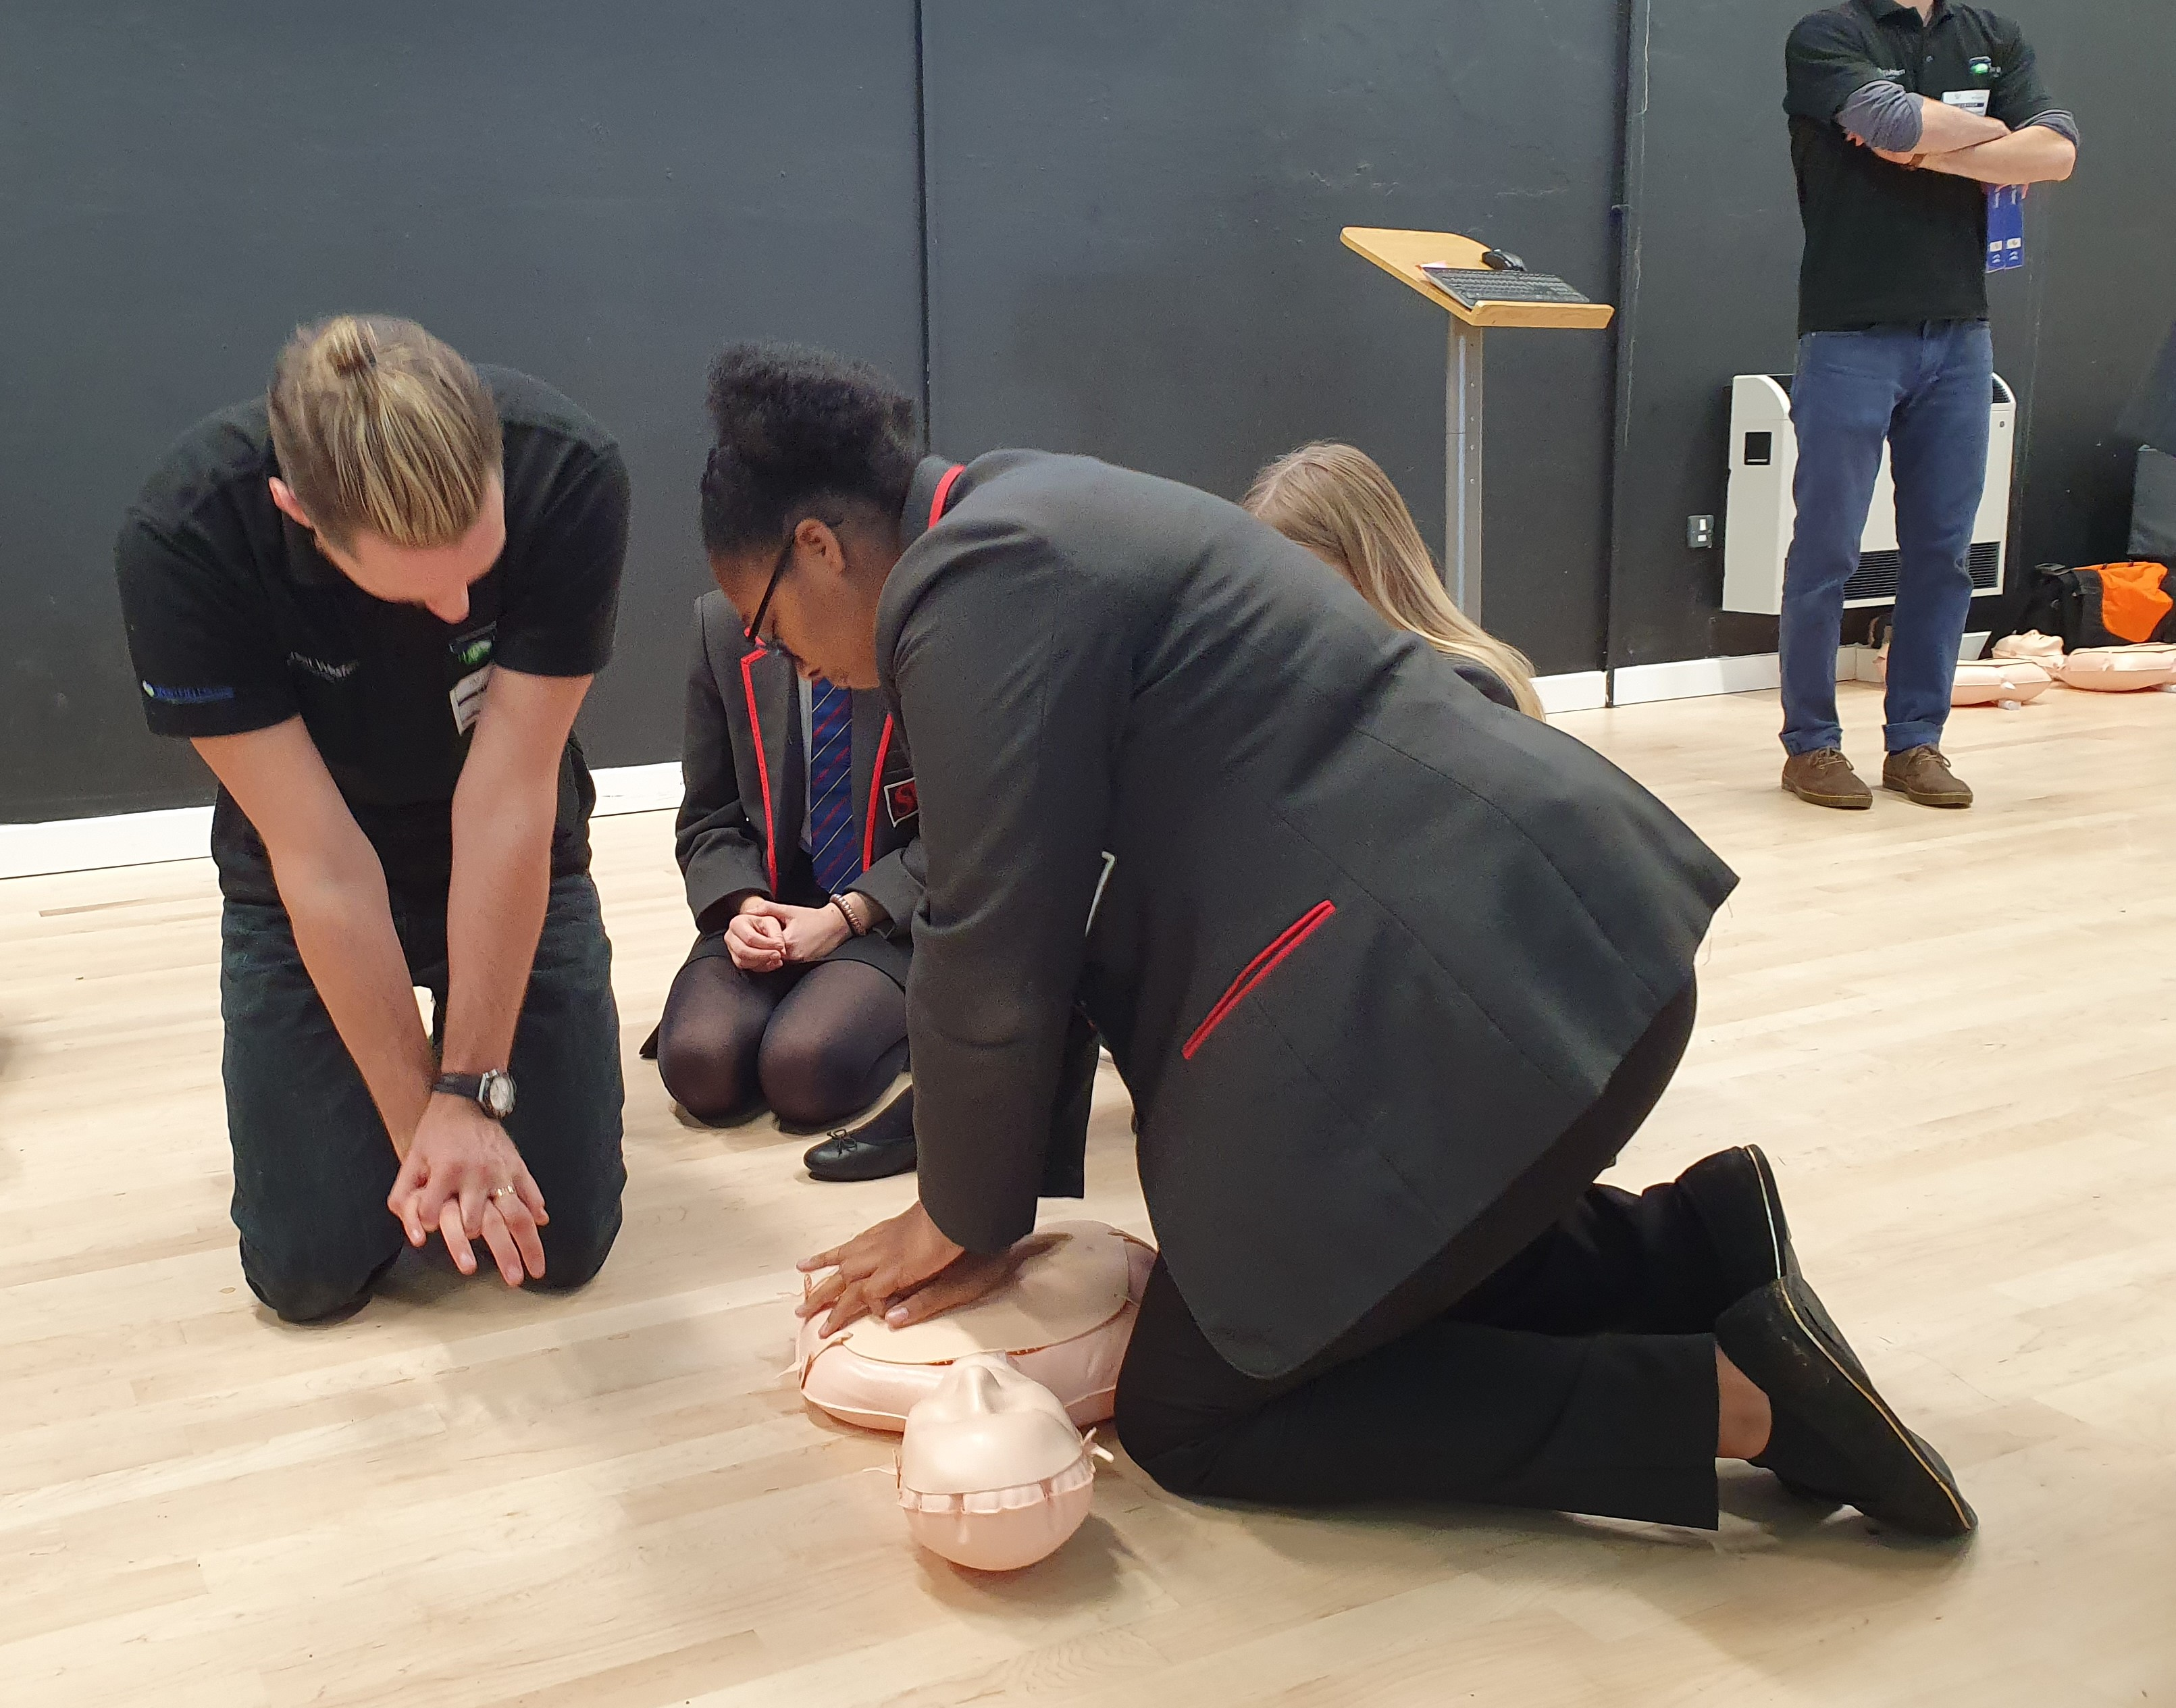 Learning CPR skills 2